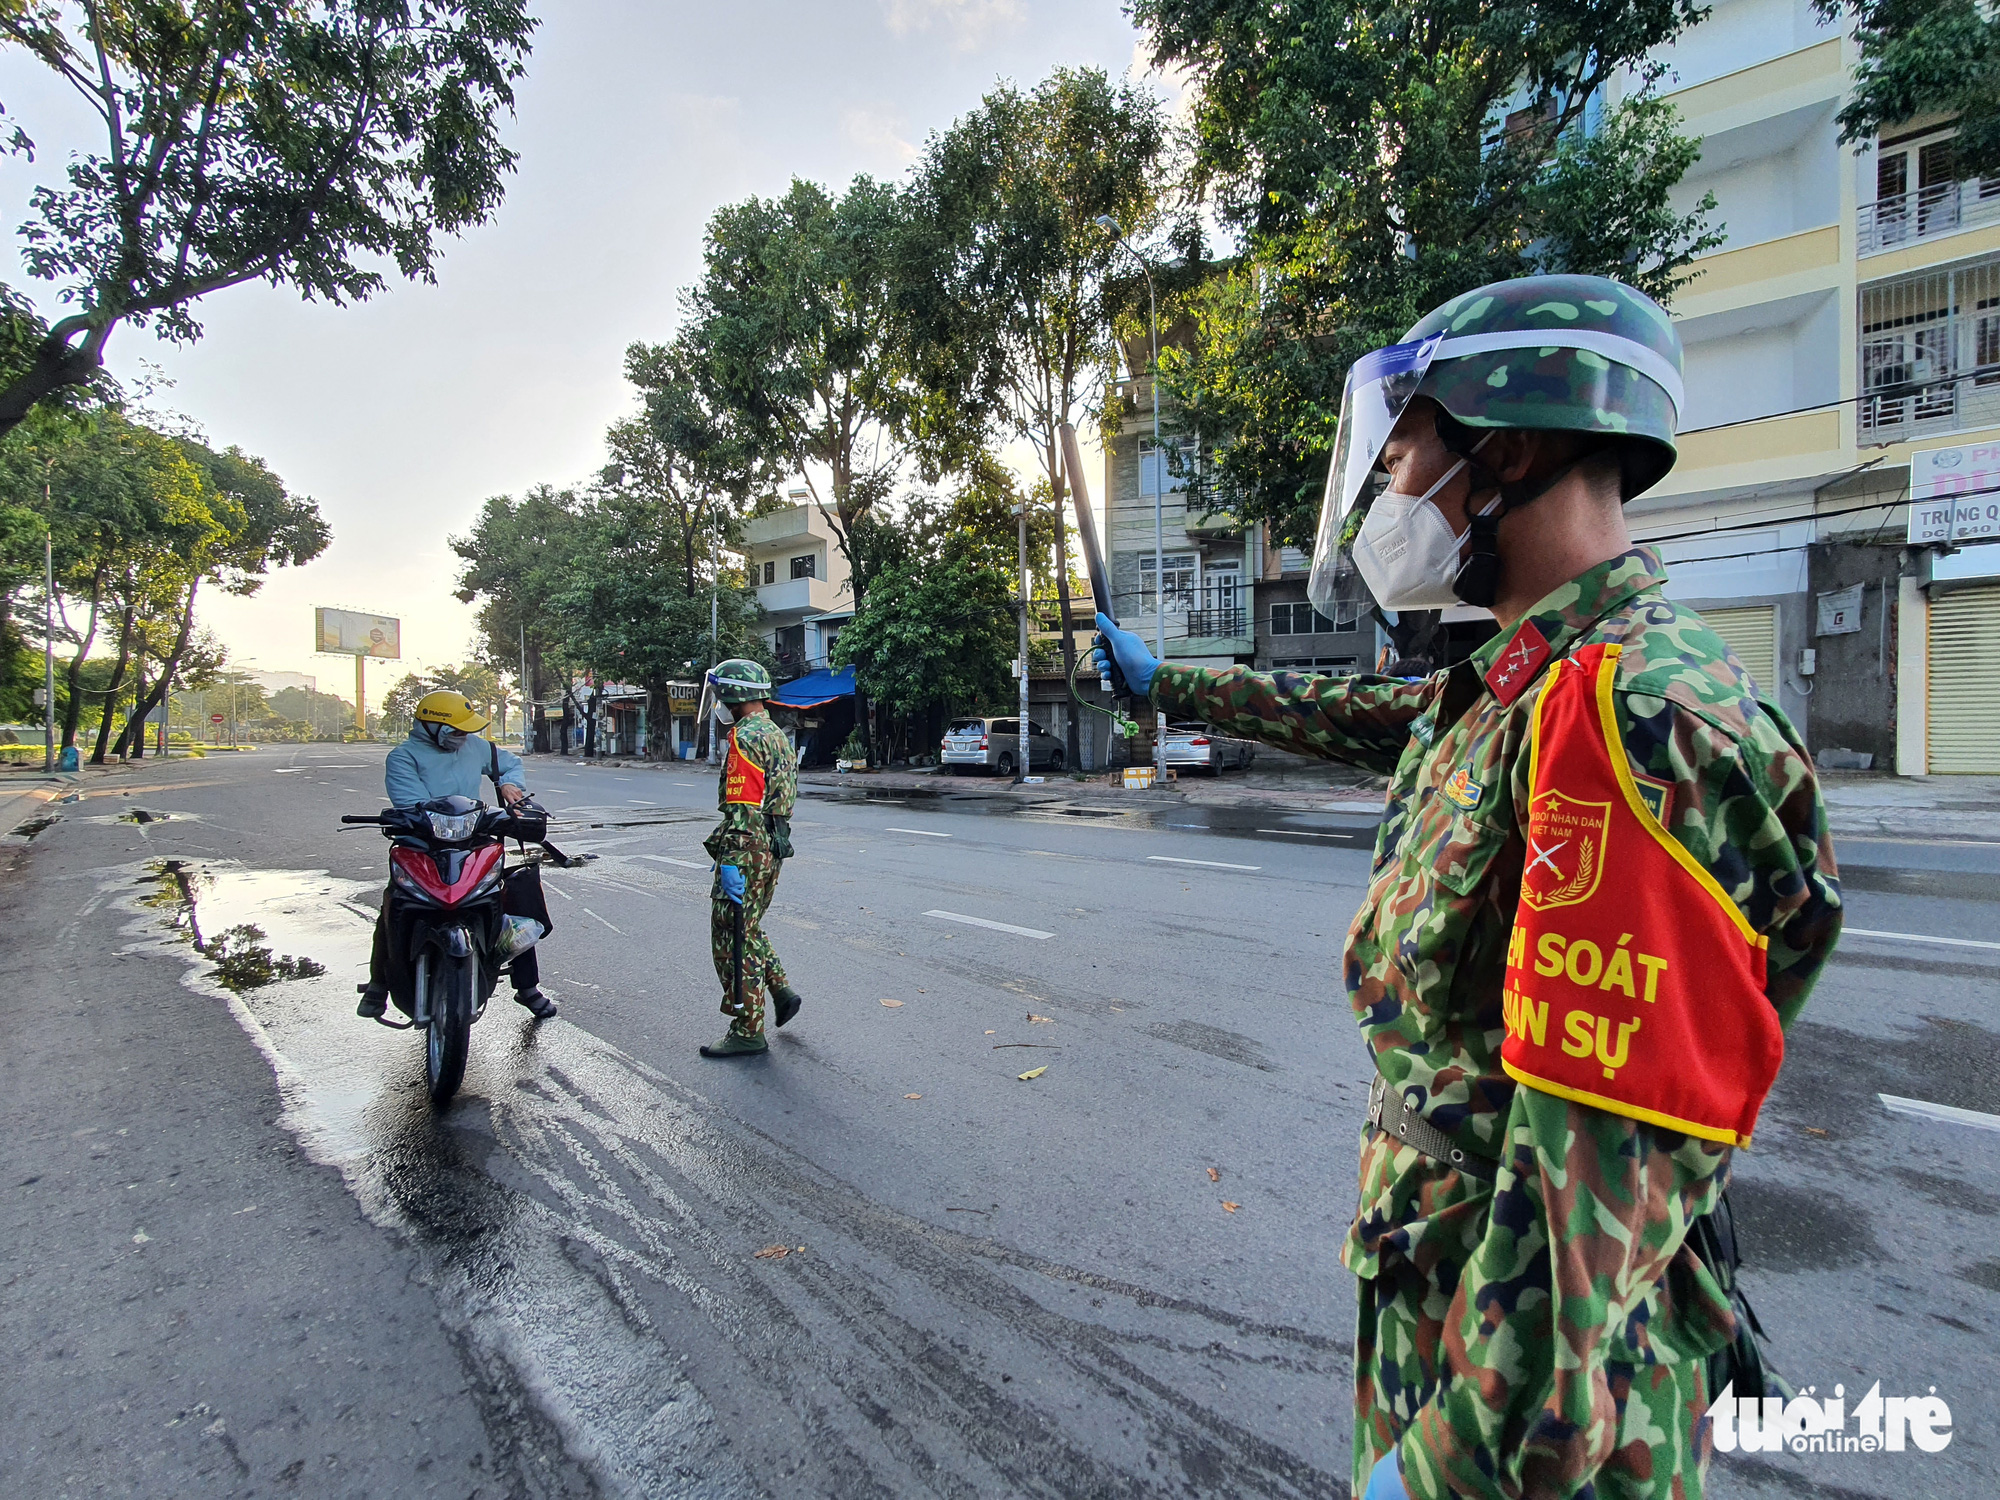 Military officers inspect a commuter on Dinh Bo Linh Street in Binh Thanh District, Ho Chi Minh City, August 24, 2021. Photo: Minh Hoa / Tuoi Tre